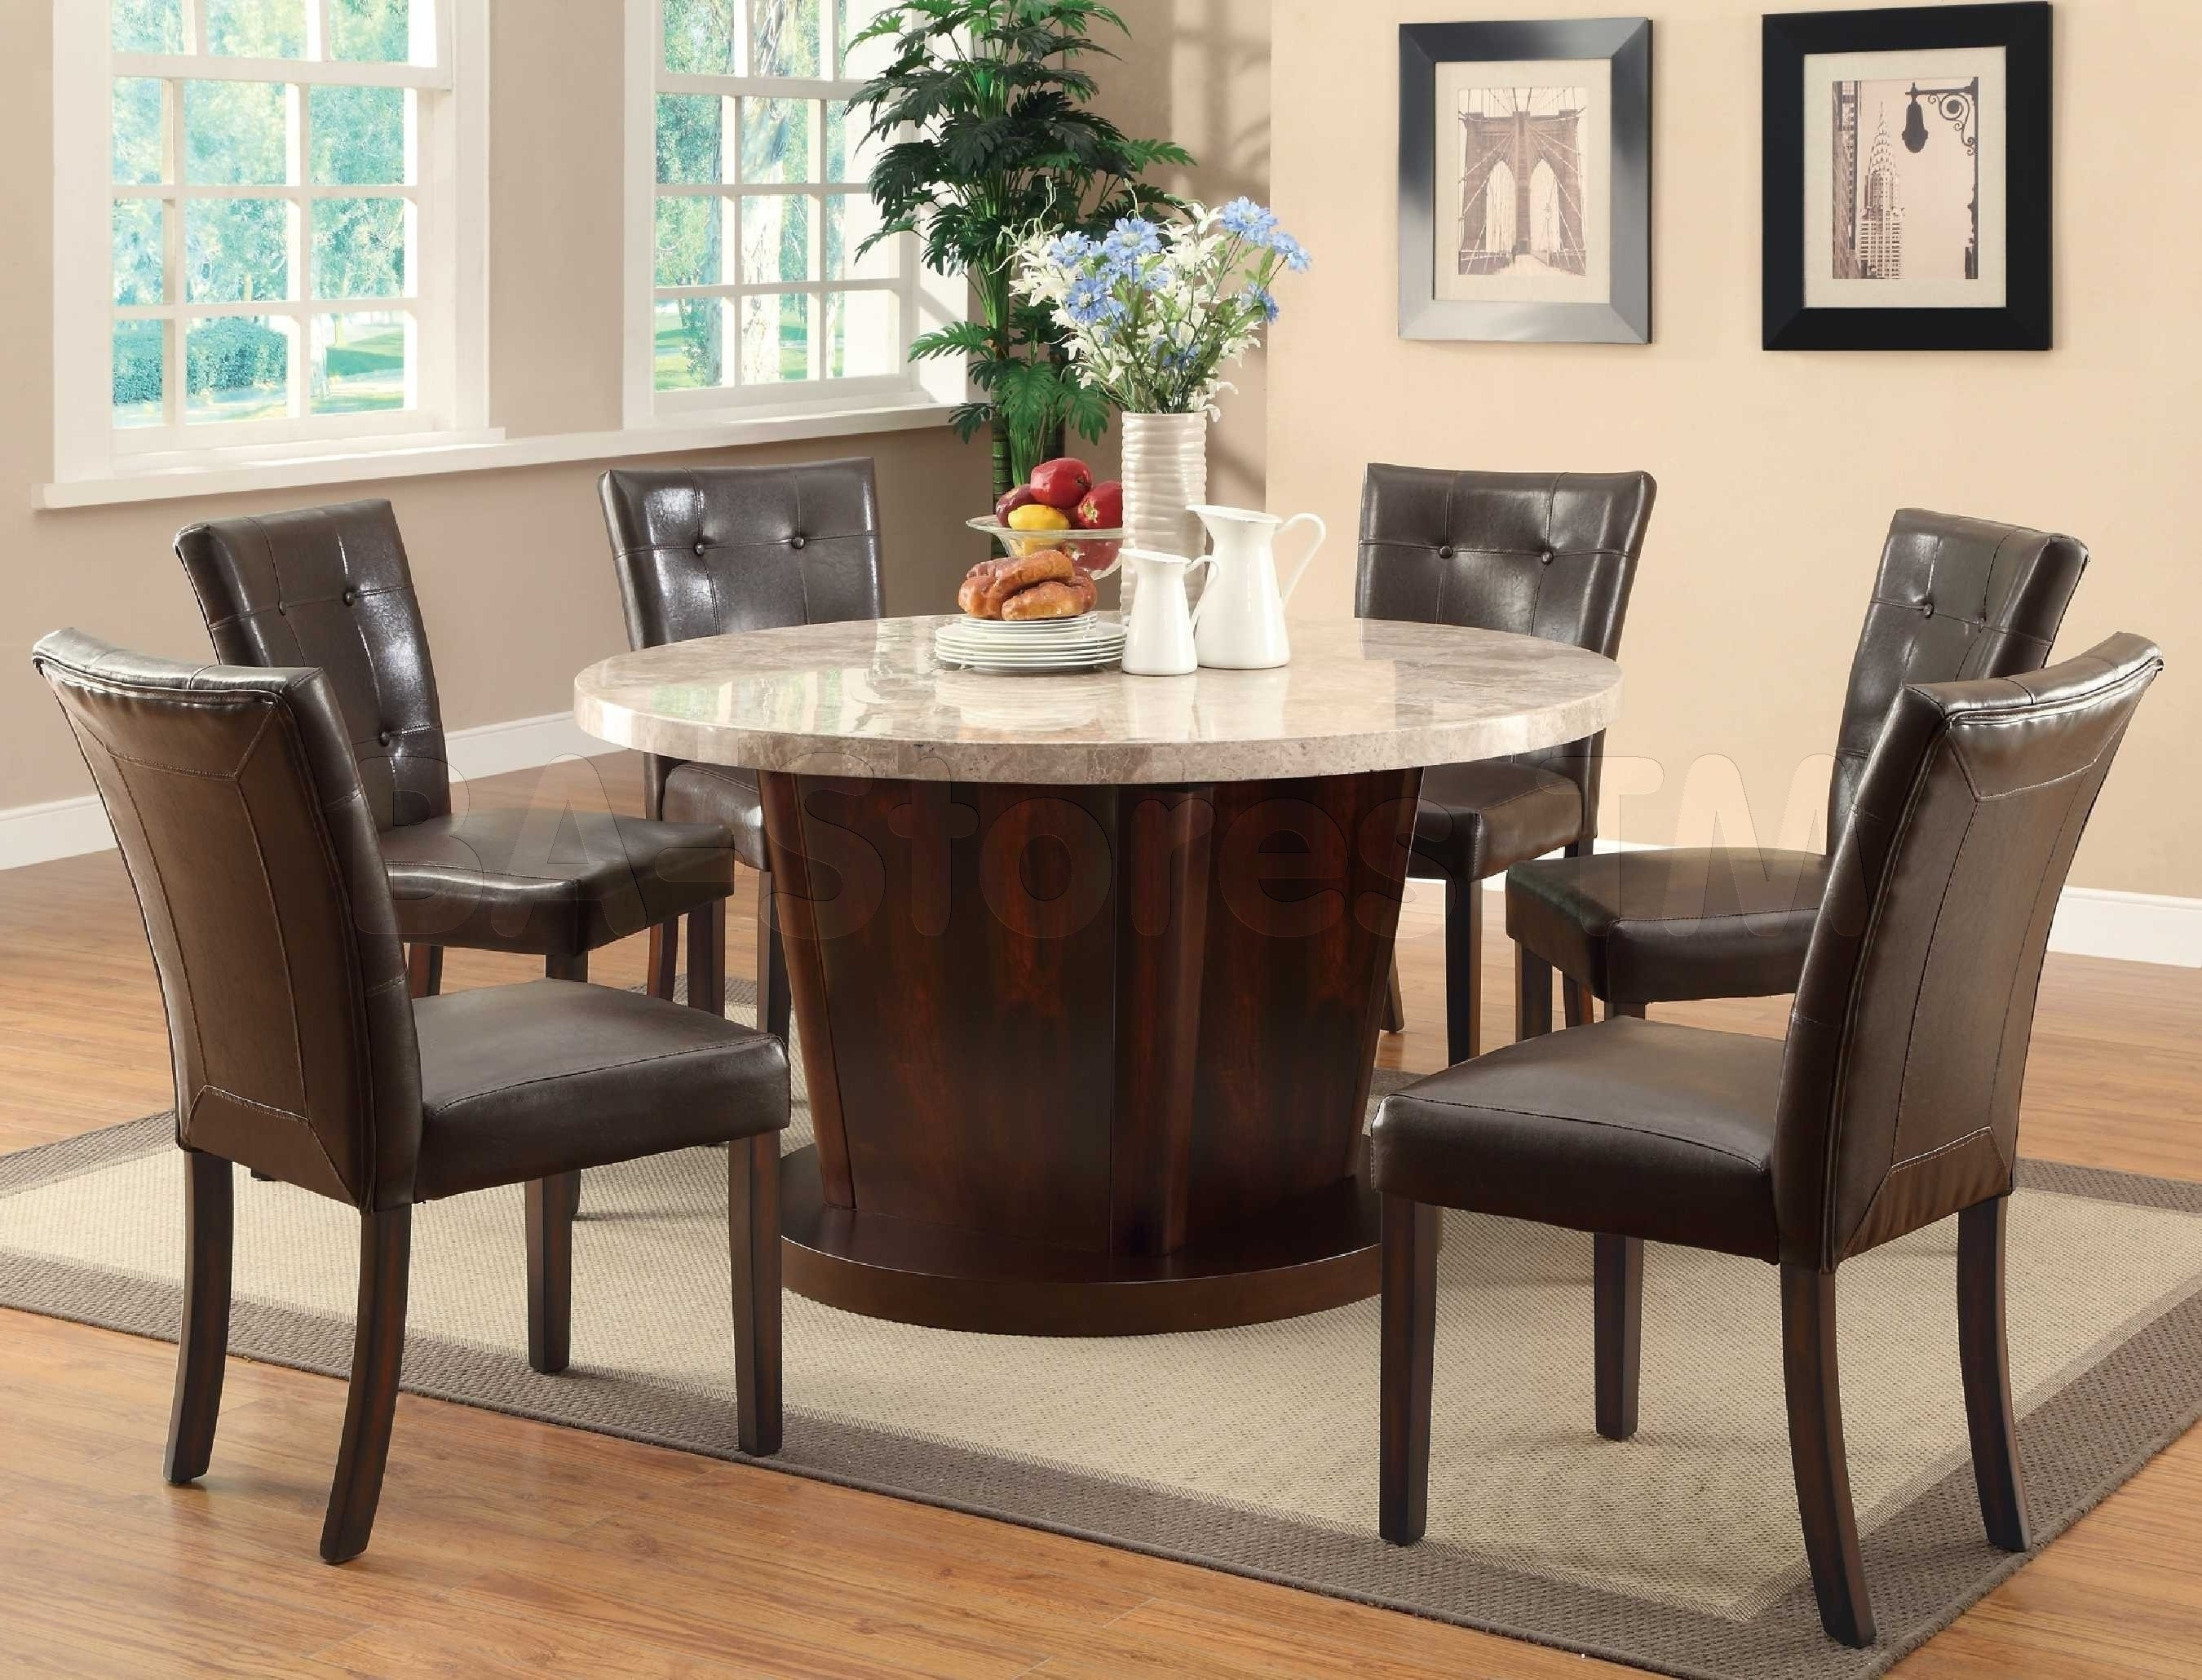 6 Person Round Dining Tables regarding Most Recent Top 30 Lovely 6 Seater Round Dining Table Dimensions